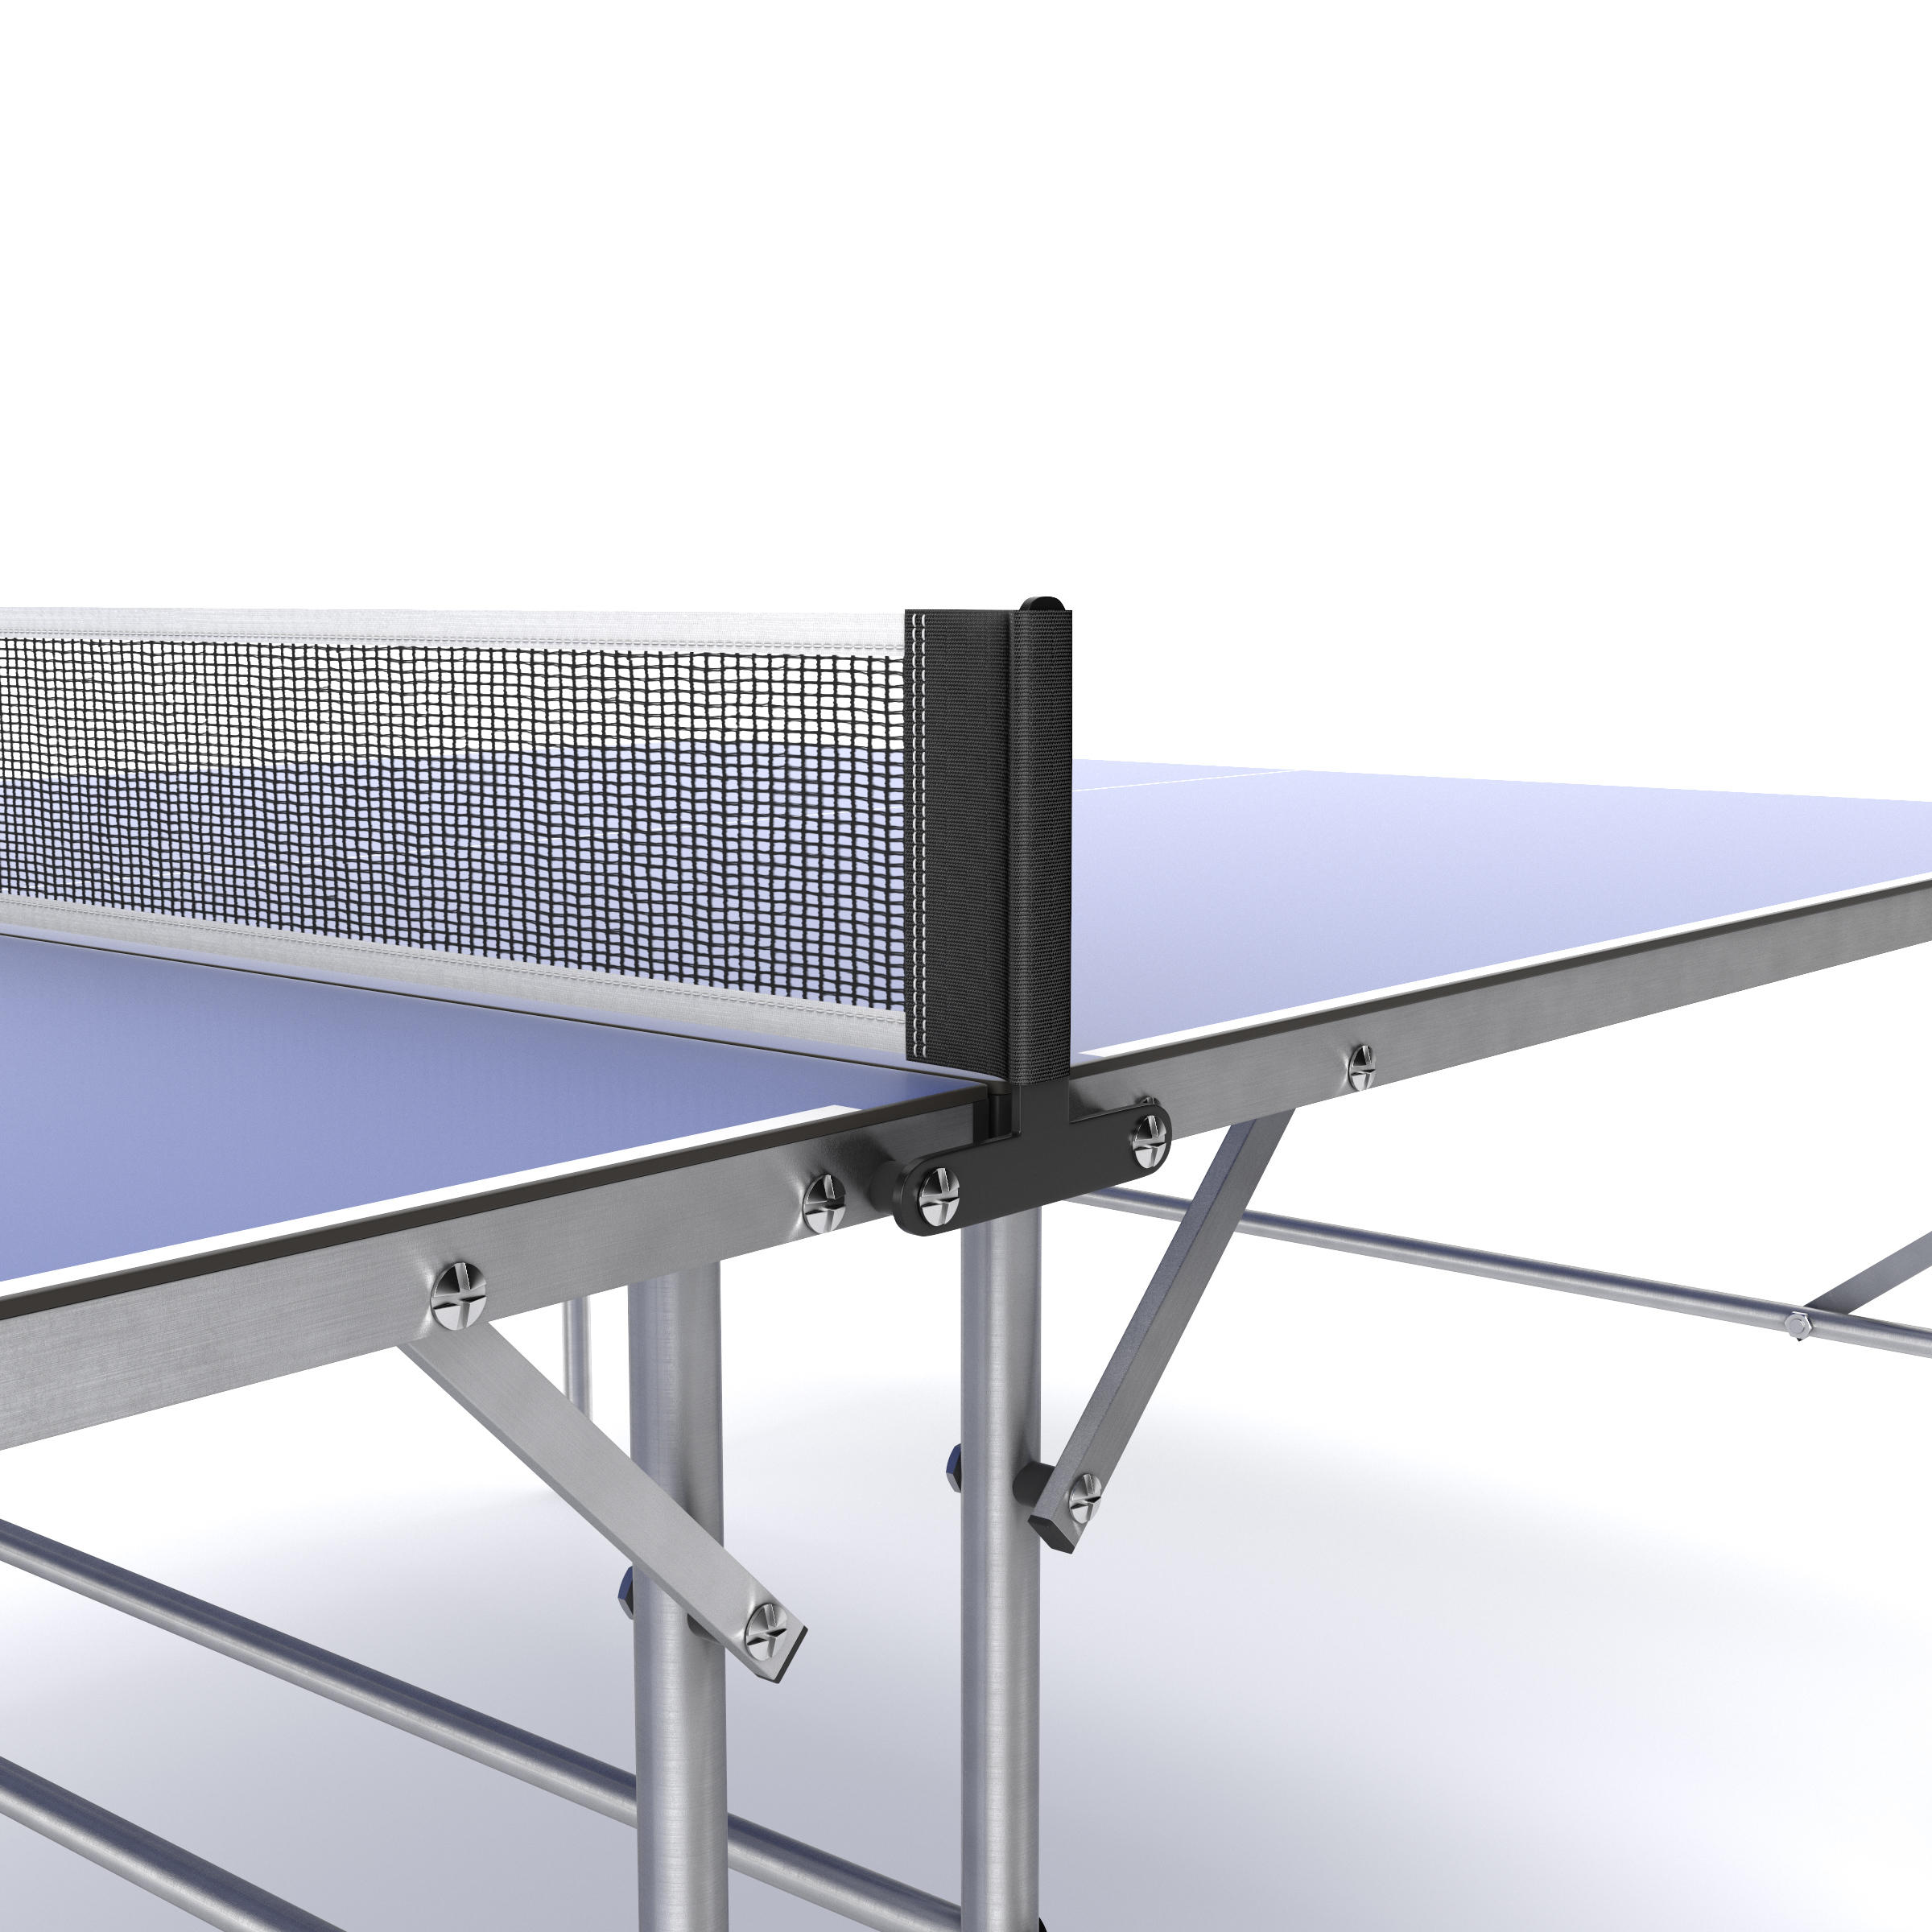 PPT 130 / FT 720 Outdoor Free Table Tennis Table